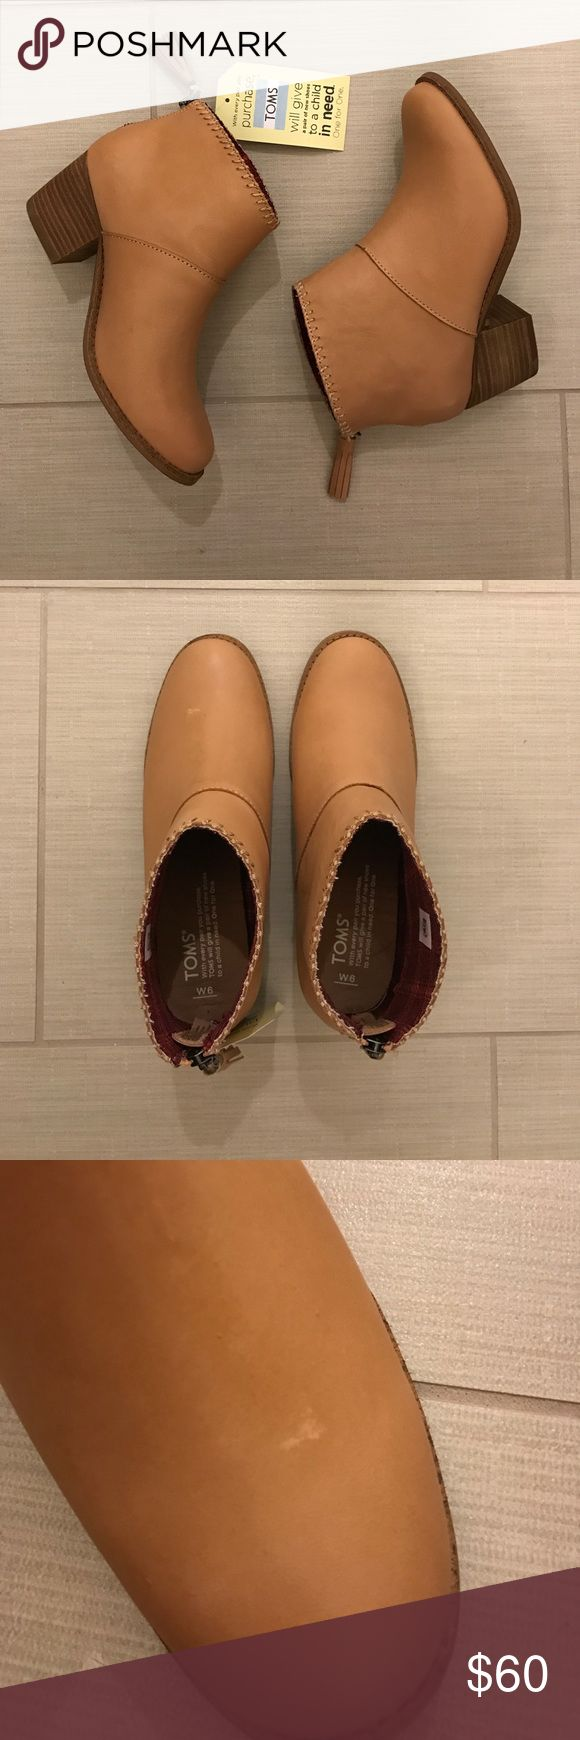 TOMS boots Brand NEW and NO trades please. Slight tiny discoloration on the left side as shown in the pic. TOMS Shoes